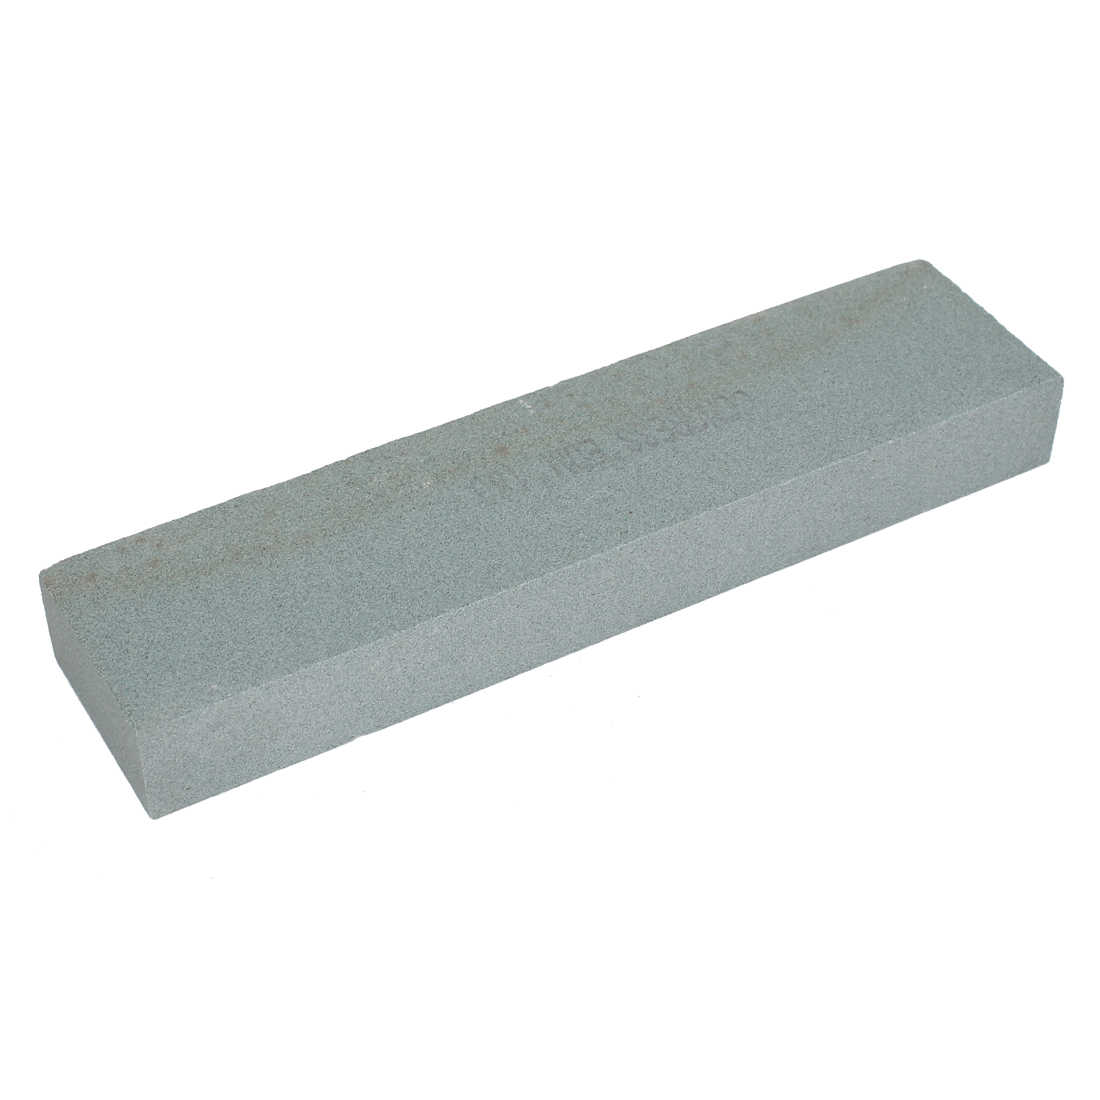 Unique Bargains Grit 180# 200x50x25mm Cyan Abrasives Sharpening Polisher Oil Stone Whetstone